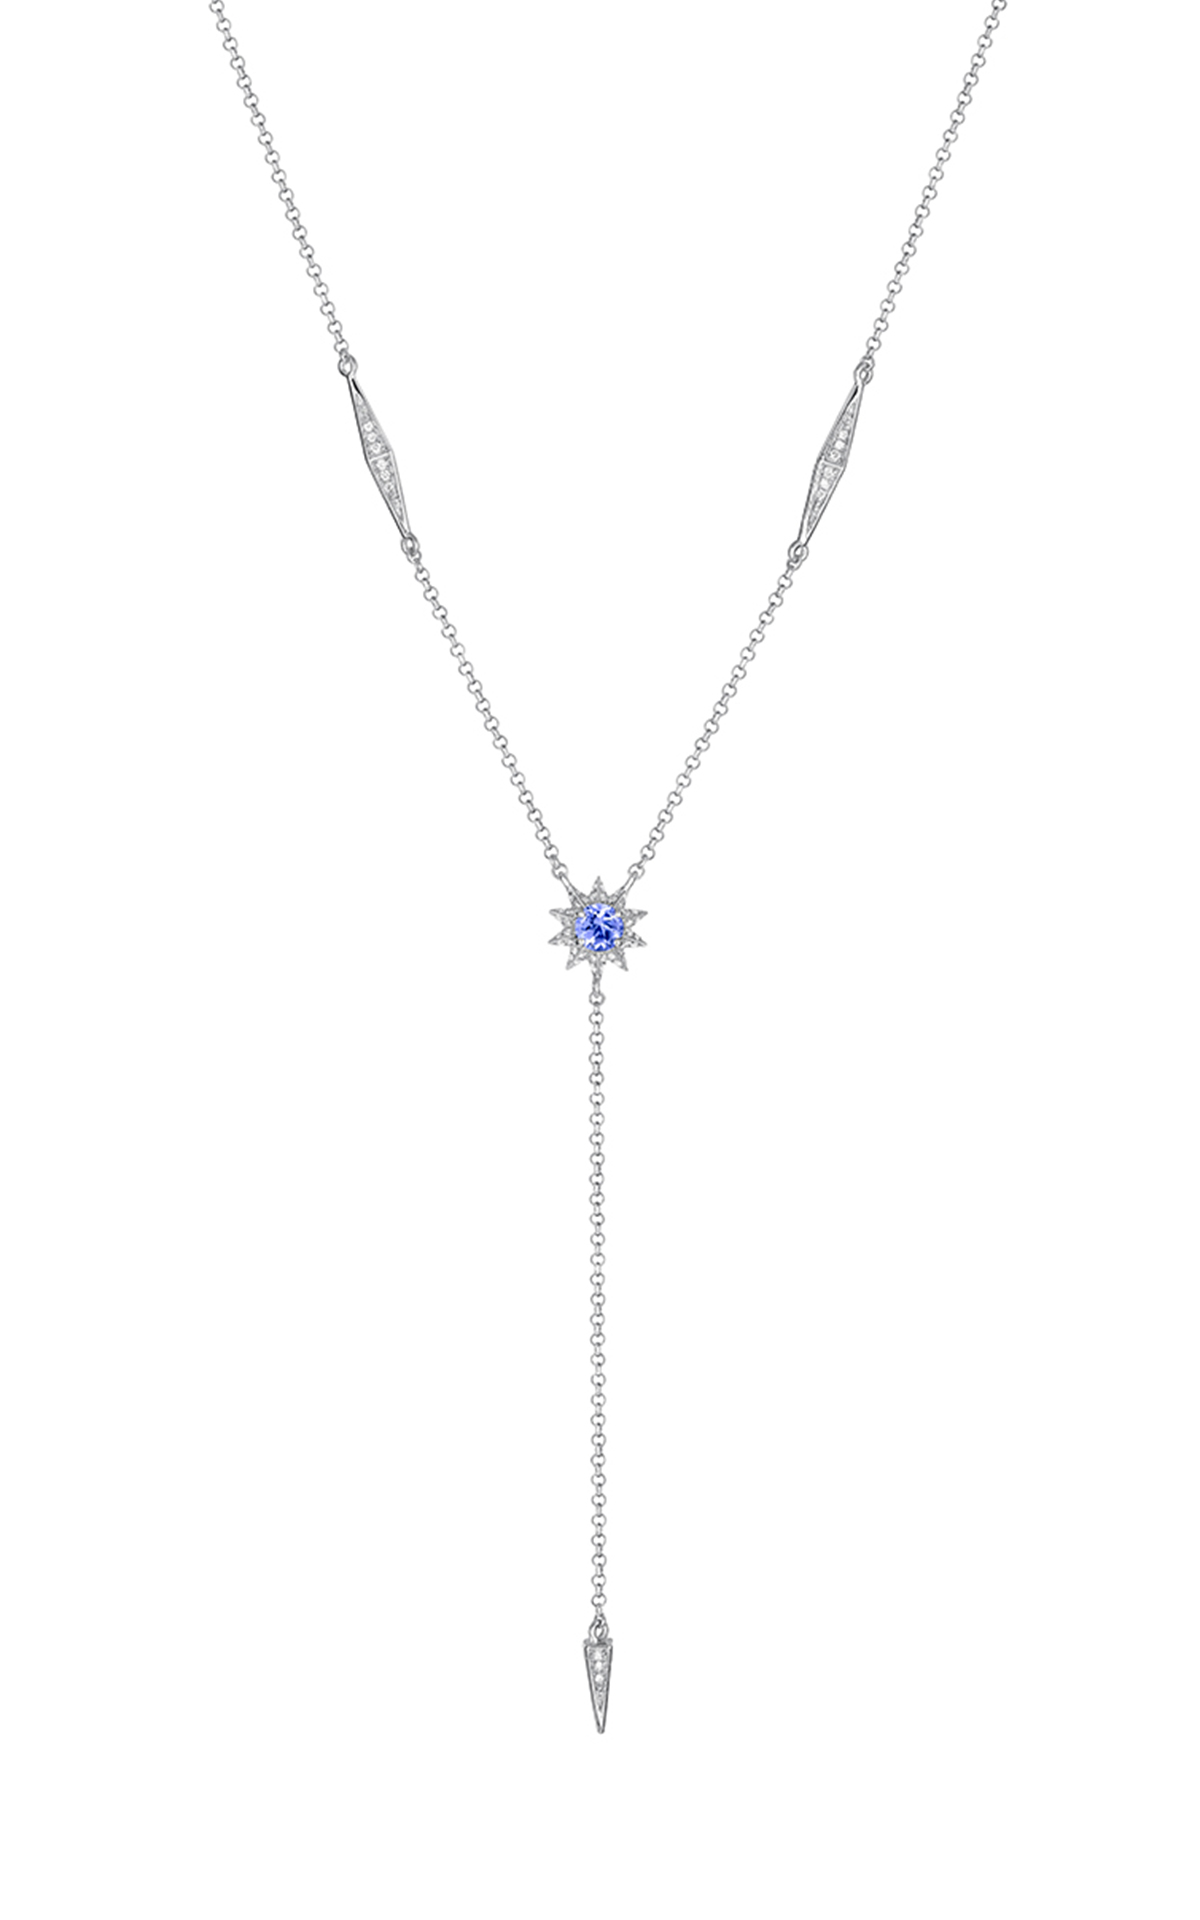 Stellar long necklace Aristocrazy